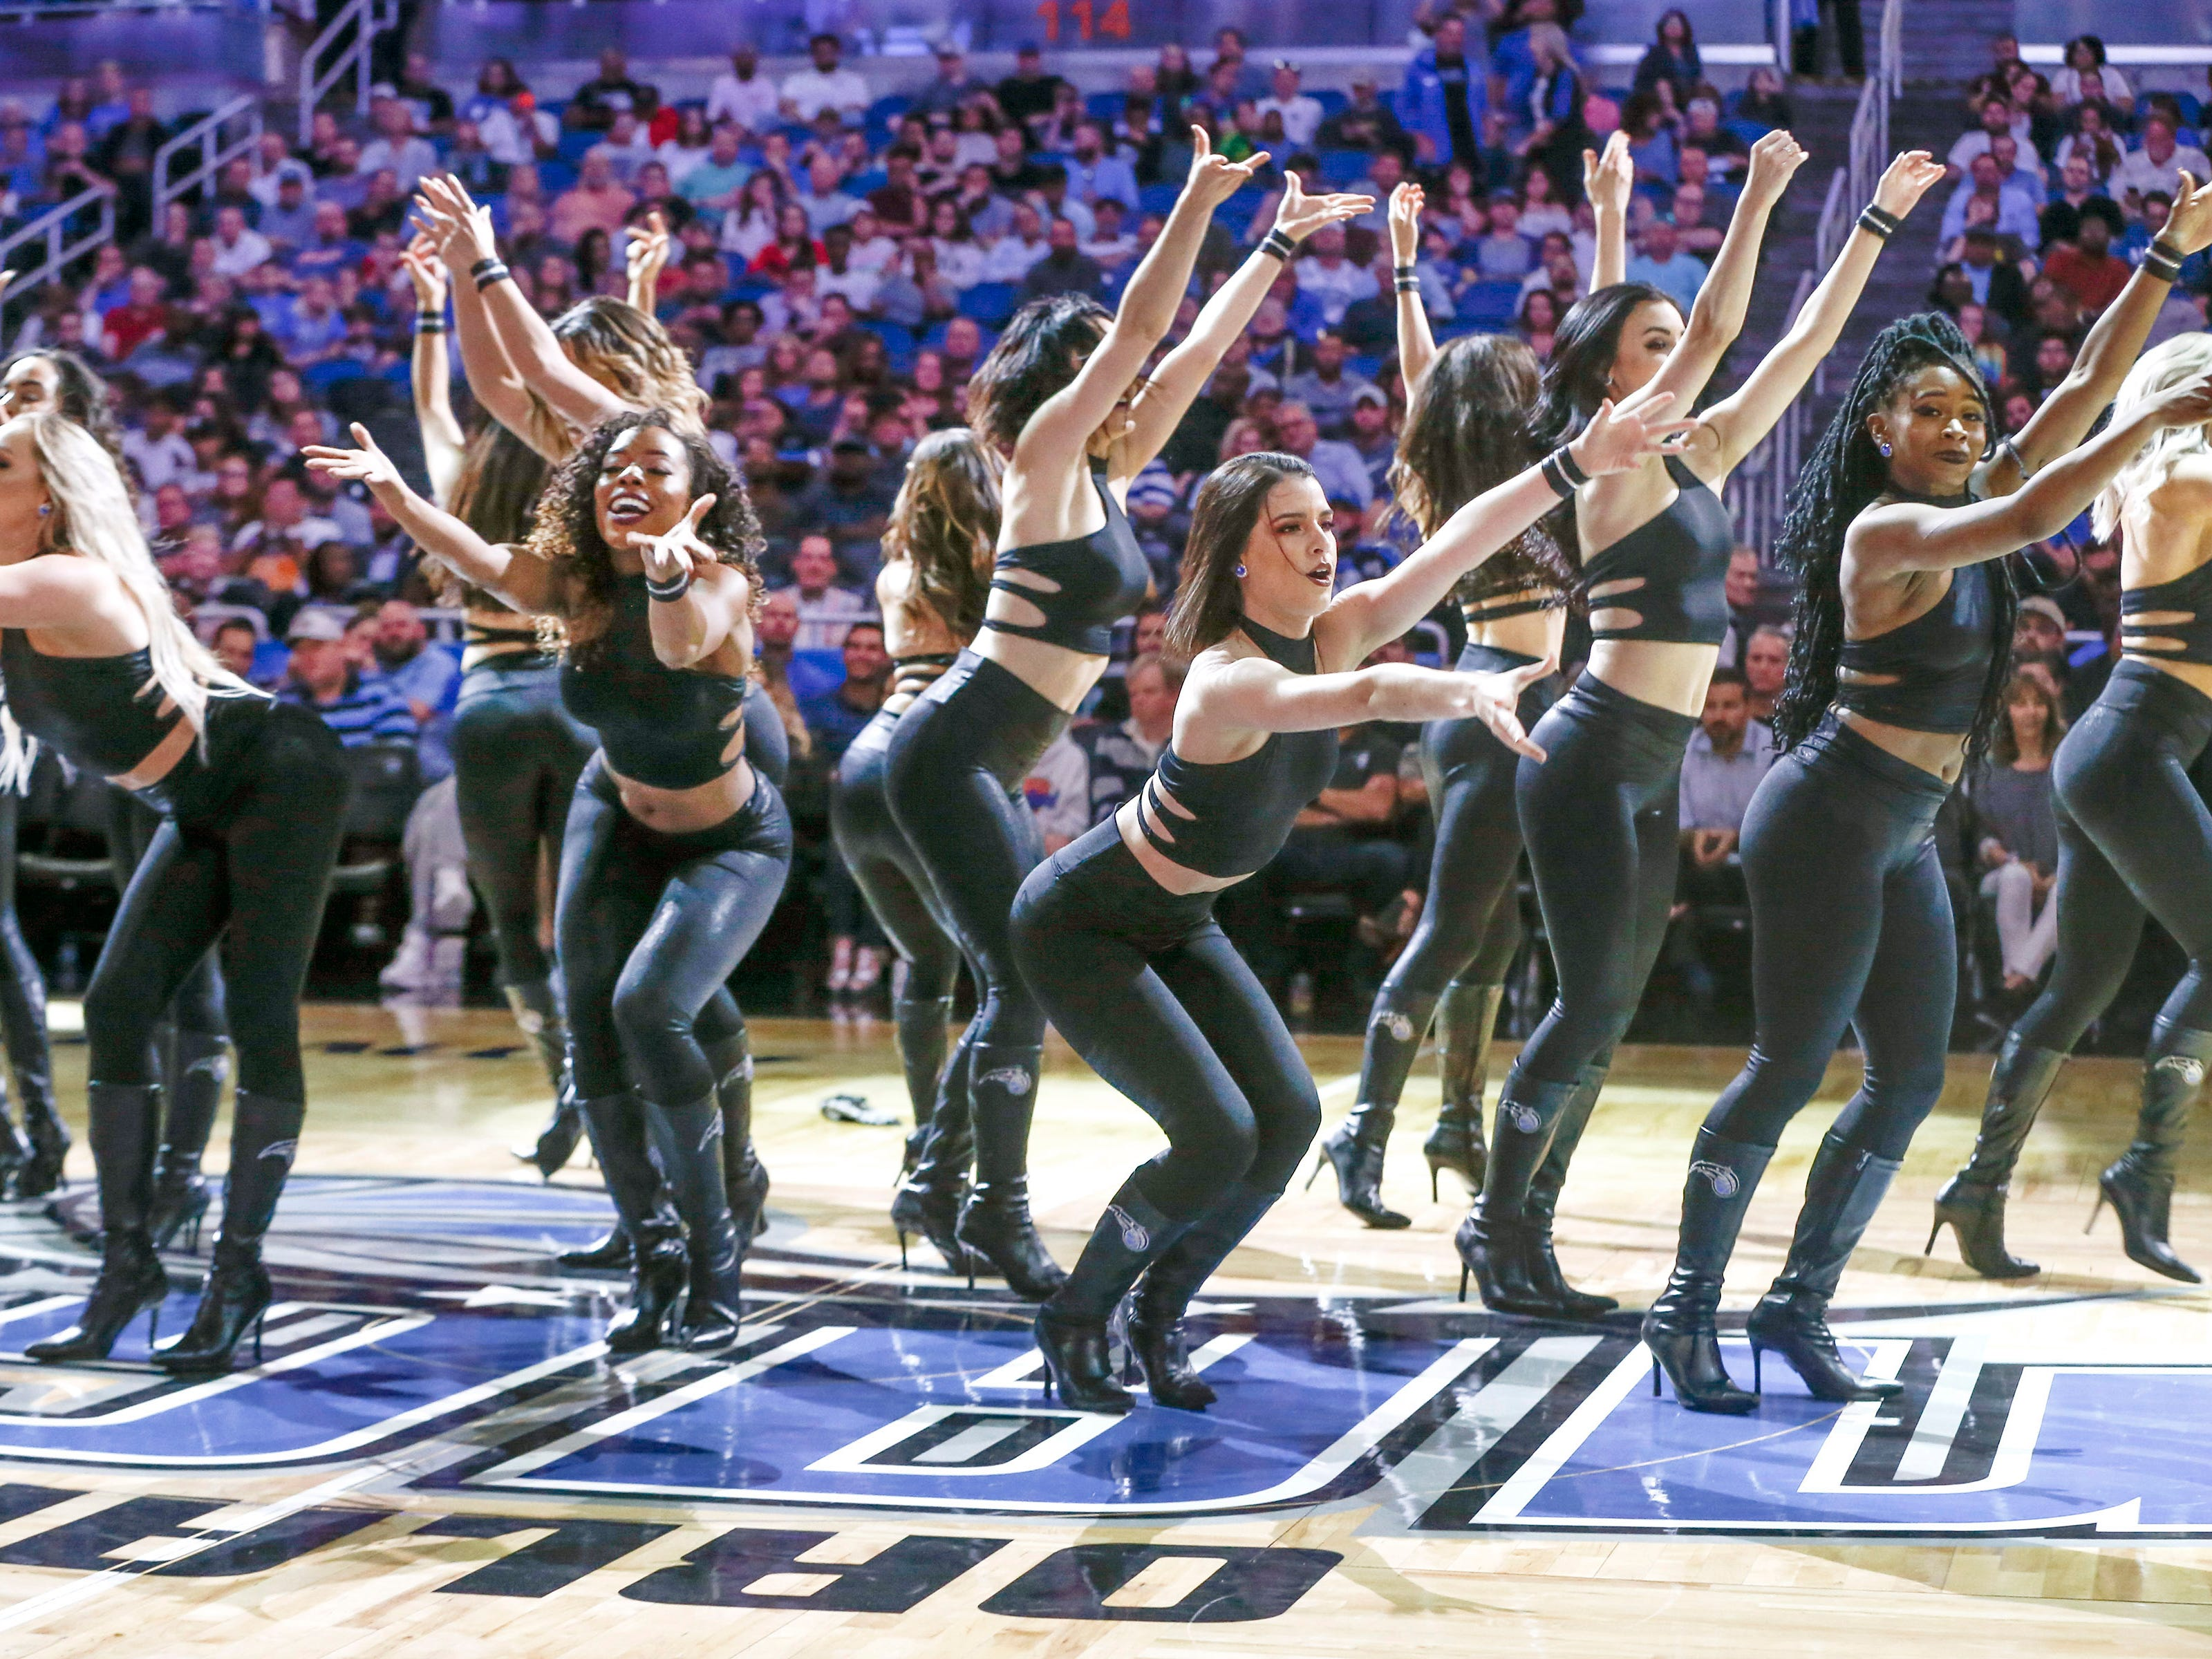 April 3: The Orlando Magic Dancers perform during the second half at Amway Center.